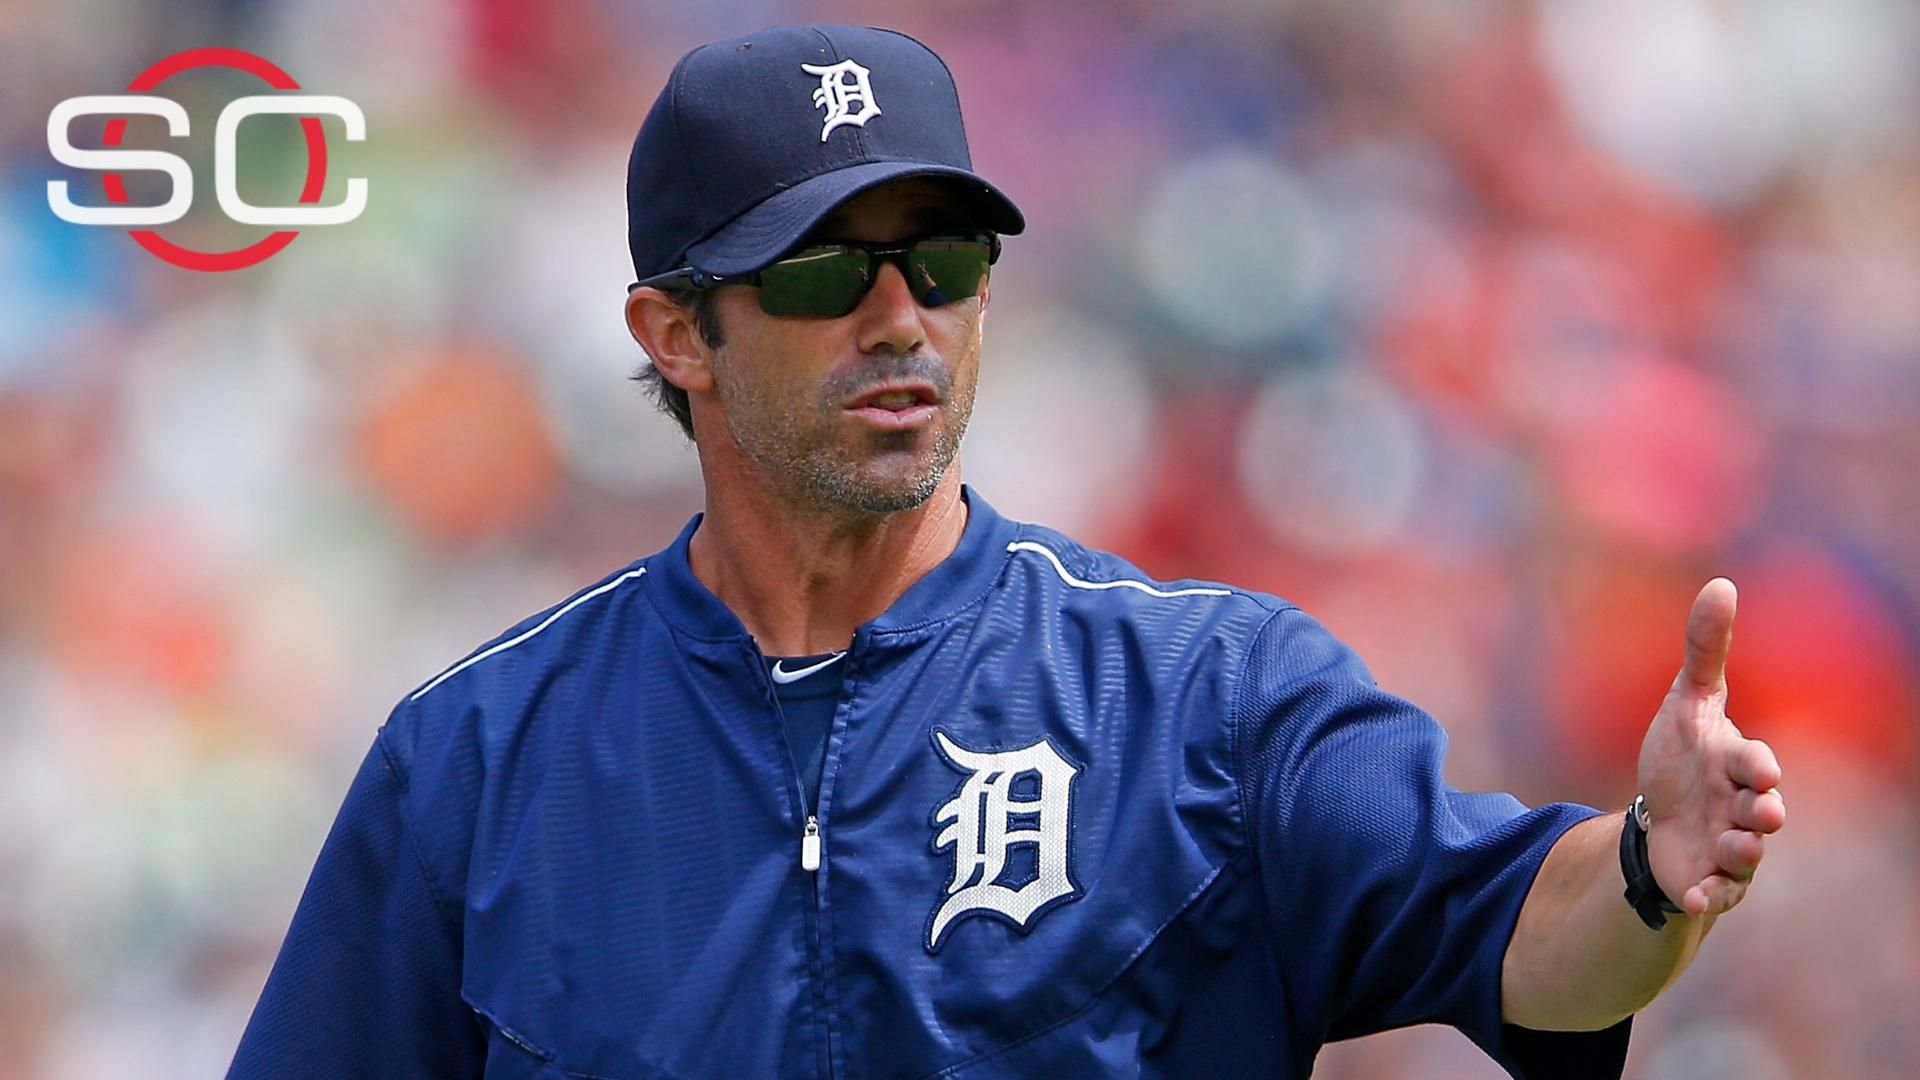 Media reports: Tigers to fire Brad Ausmus